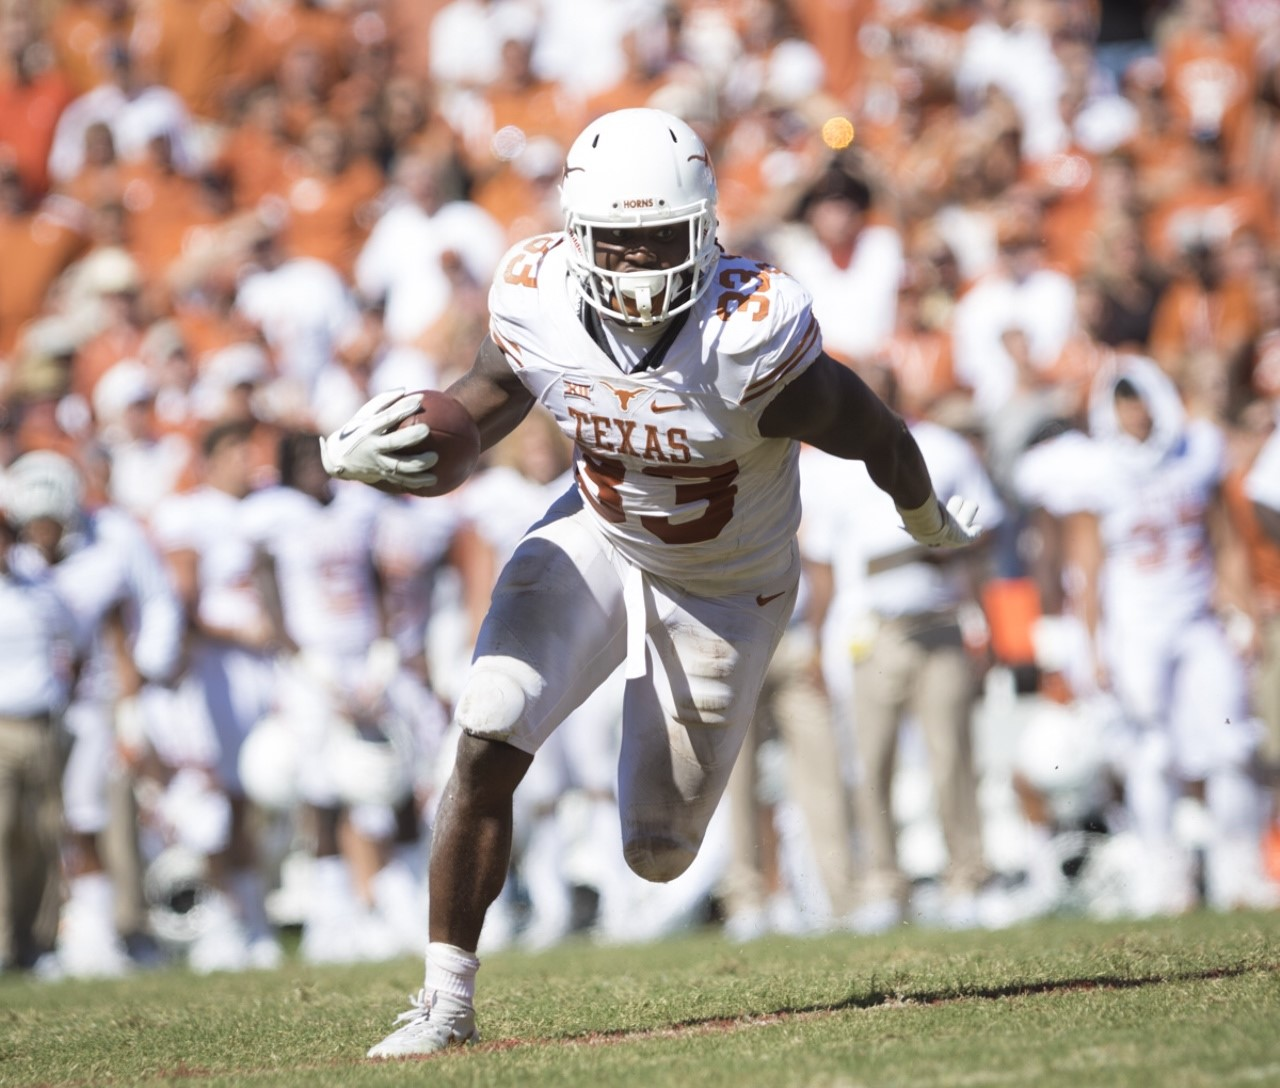 Inside the Gameplan: Reviewing the RRS - Inside Texas